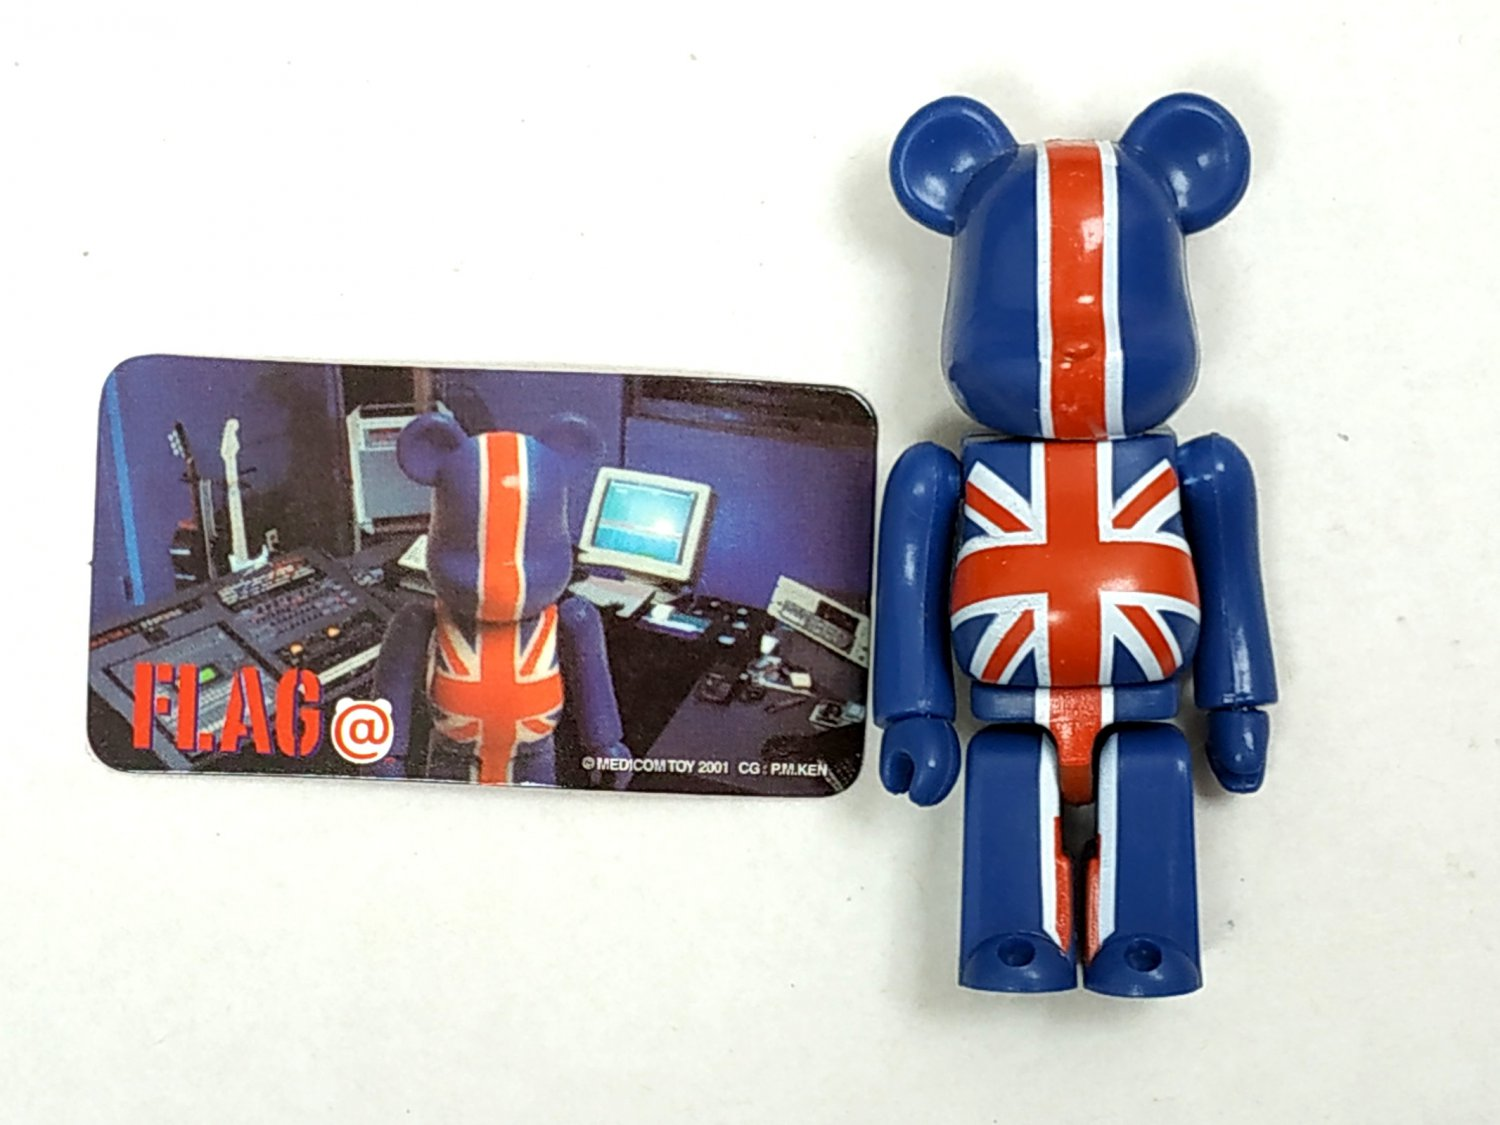 Medicom Toy 2001 Be@rbrick 100% Bearbrick Series 2 Flag Action Figure S2 collectible